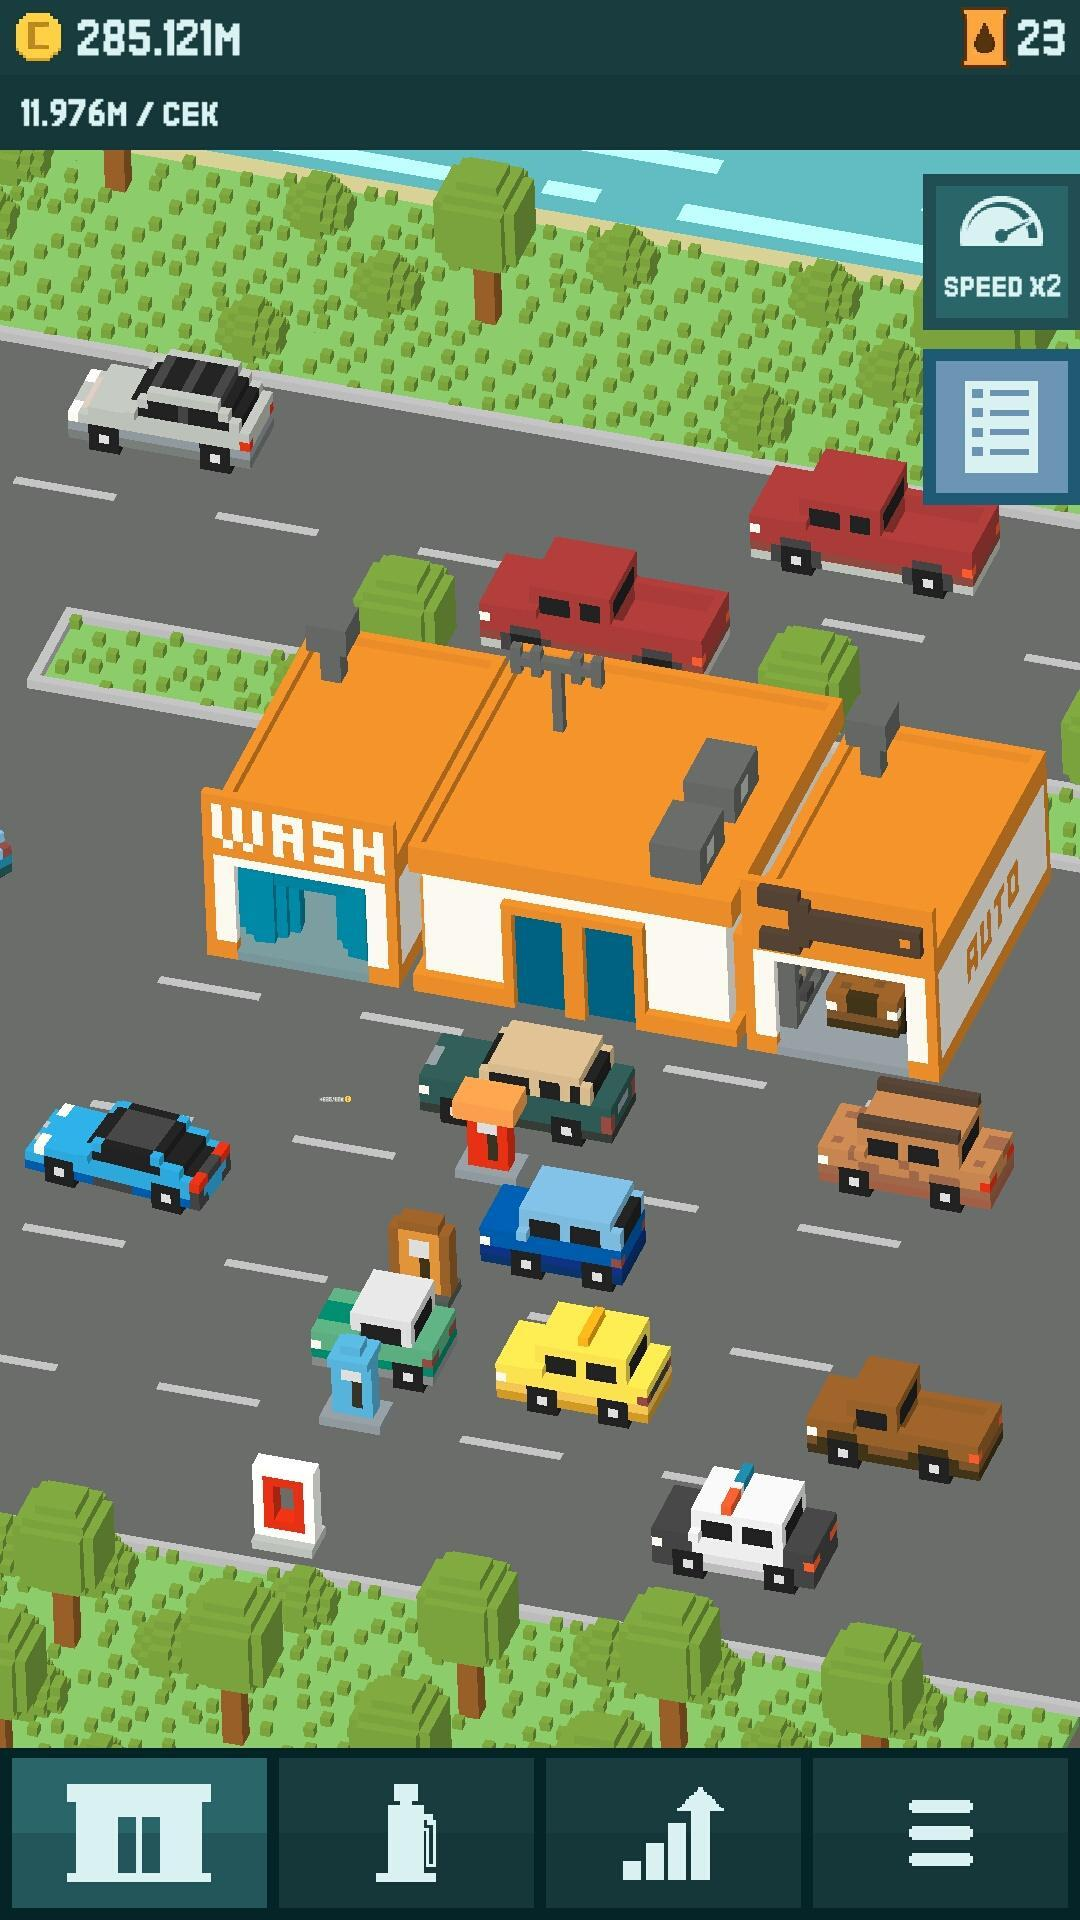 Gas Station for Android - APK Download